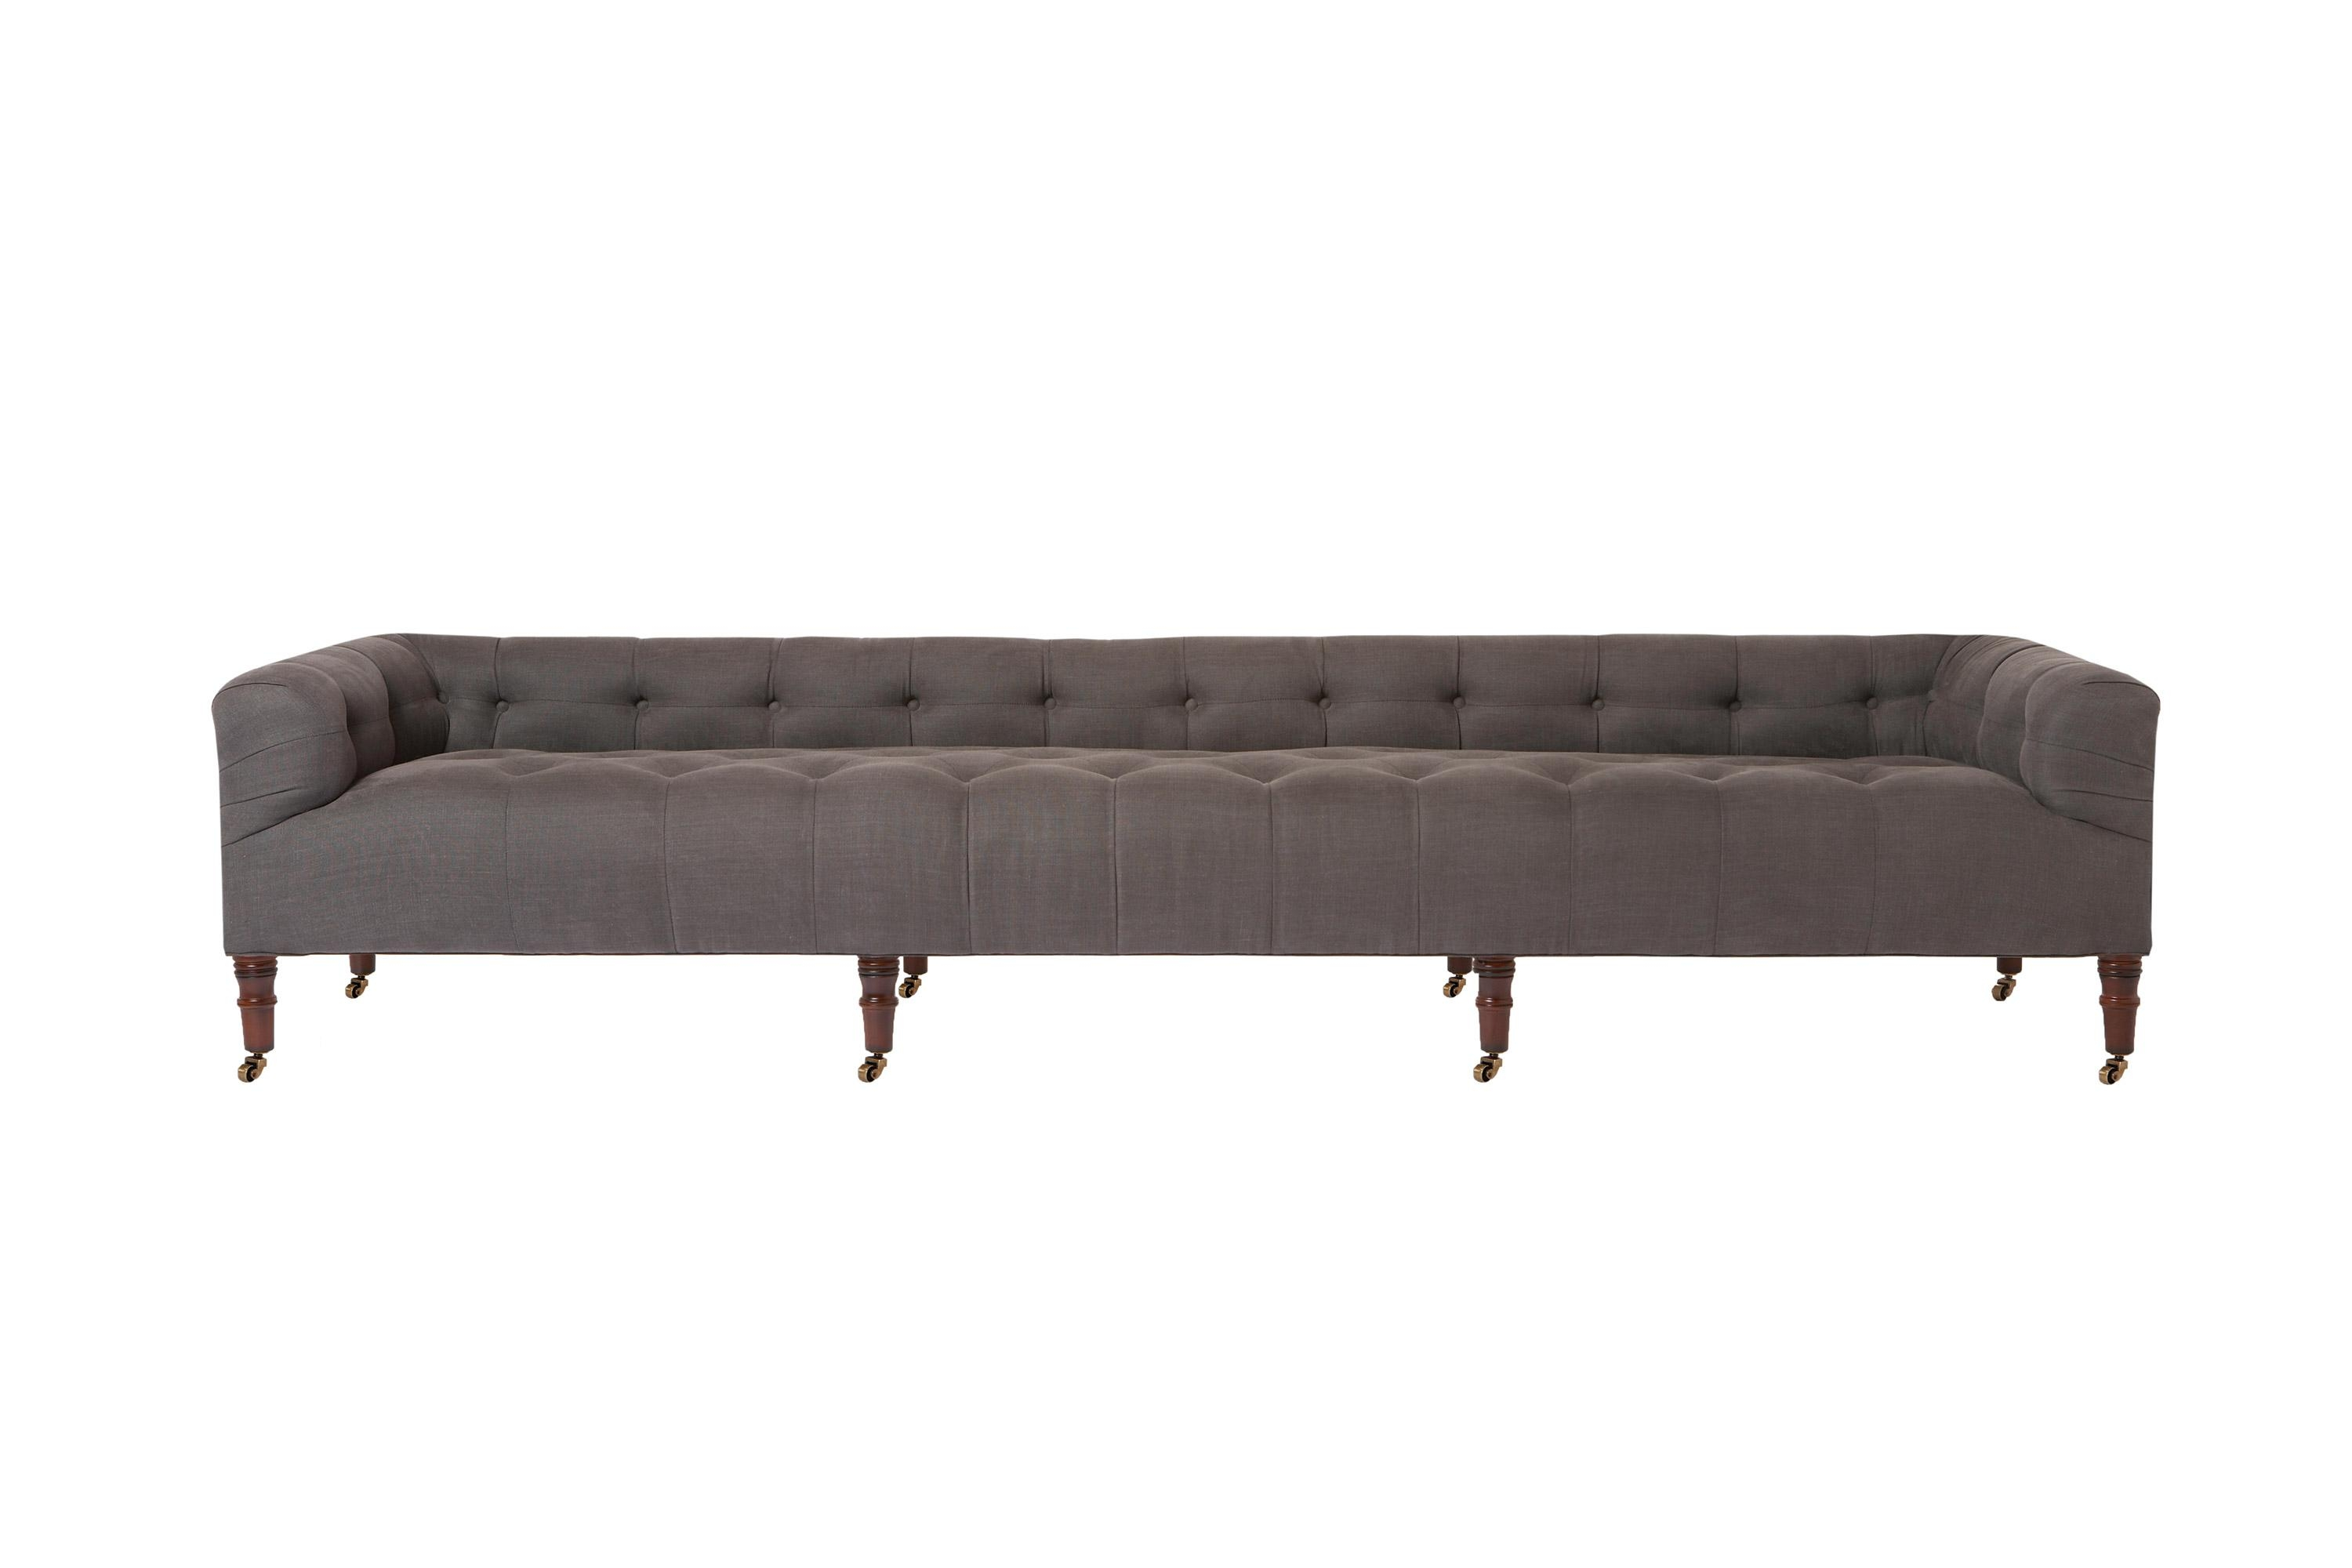 John Derian With Regard To Bench Style Sofas (Image 11 of 20)